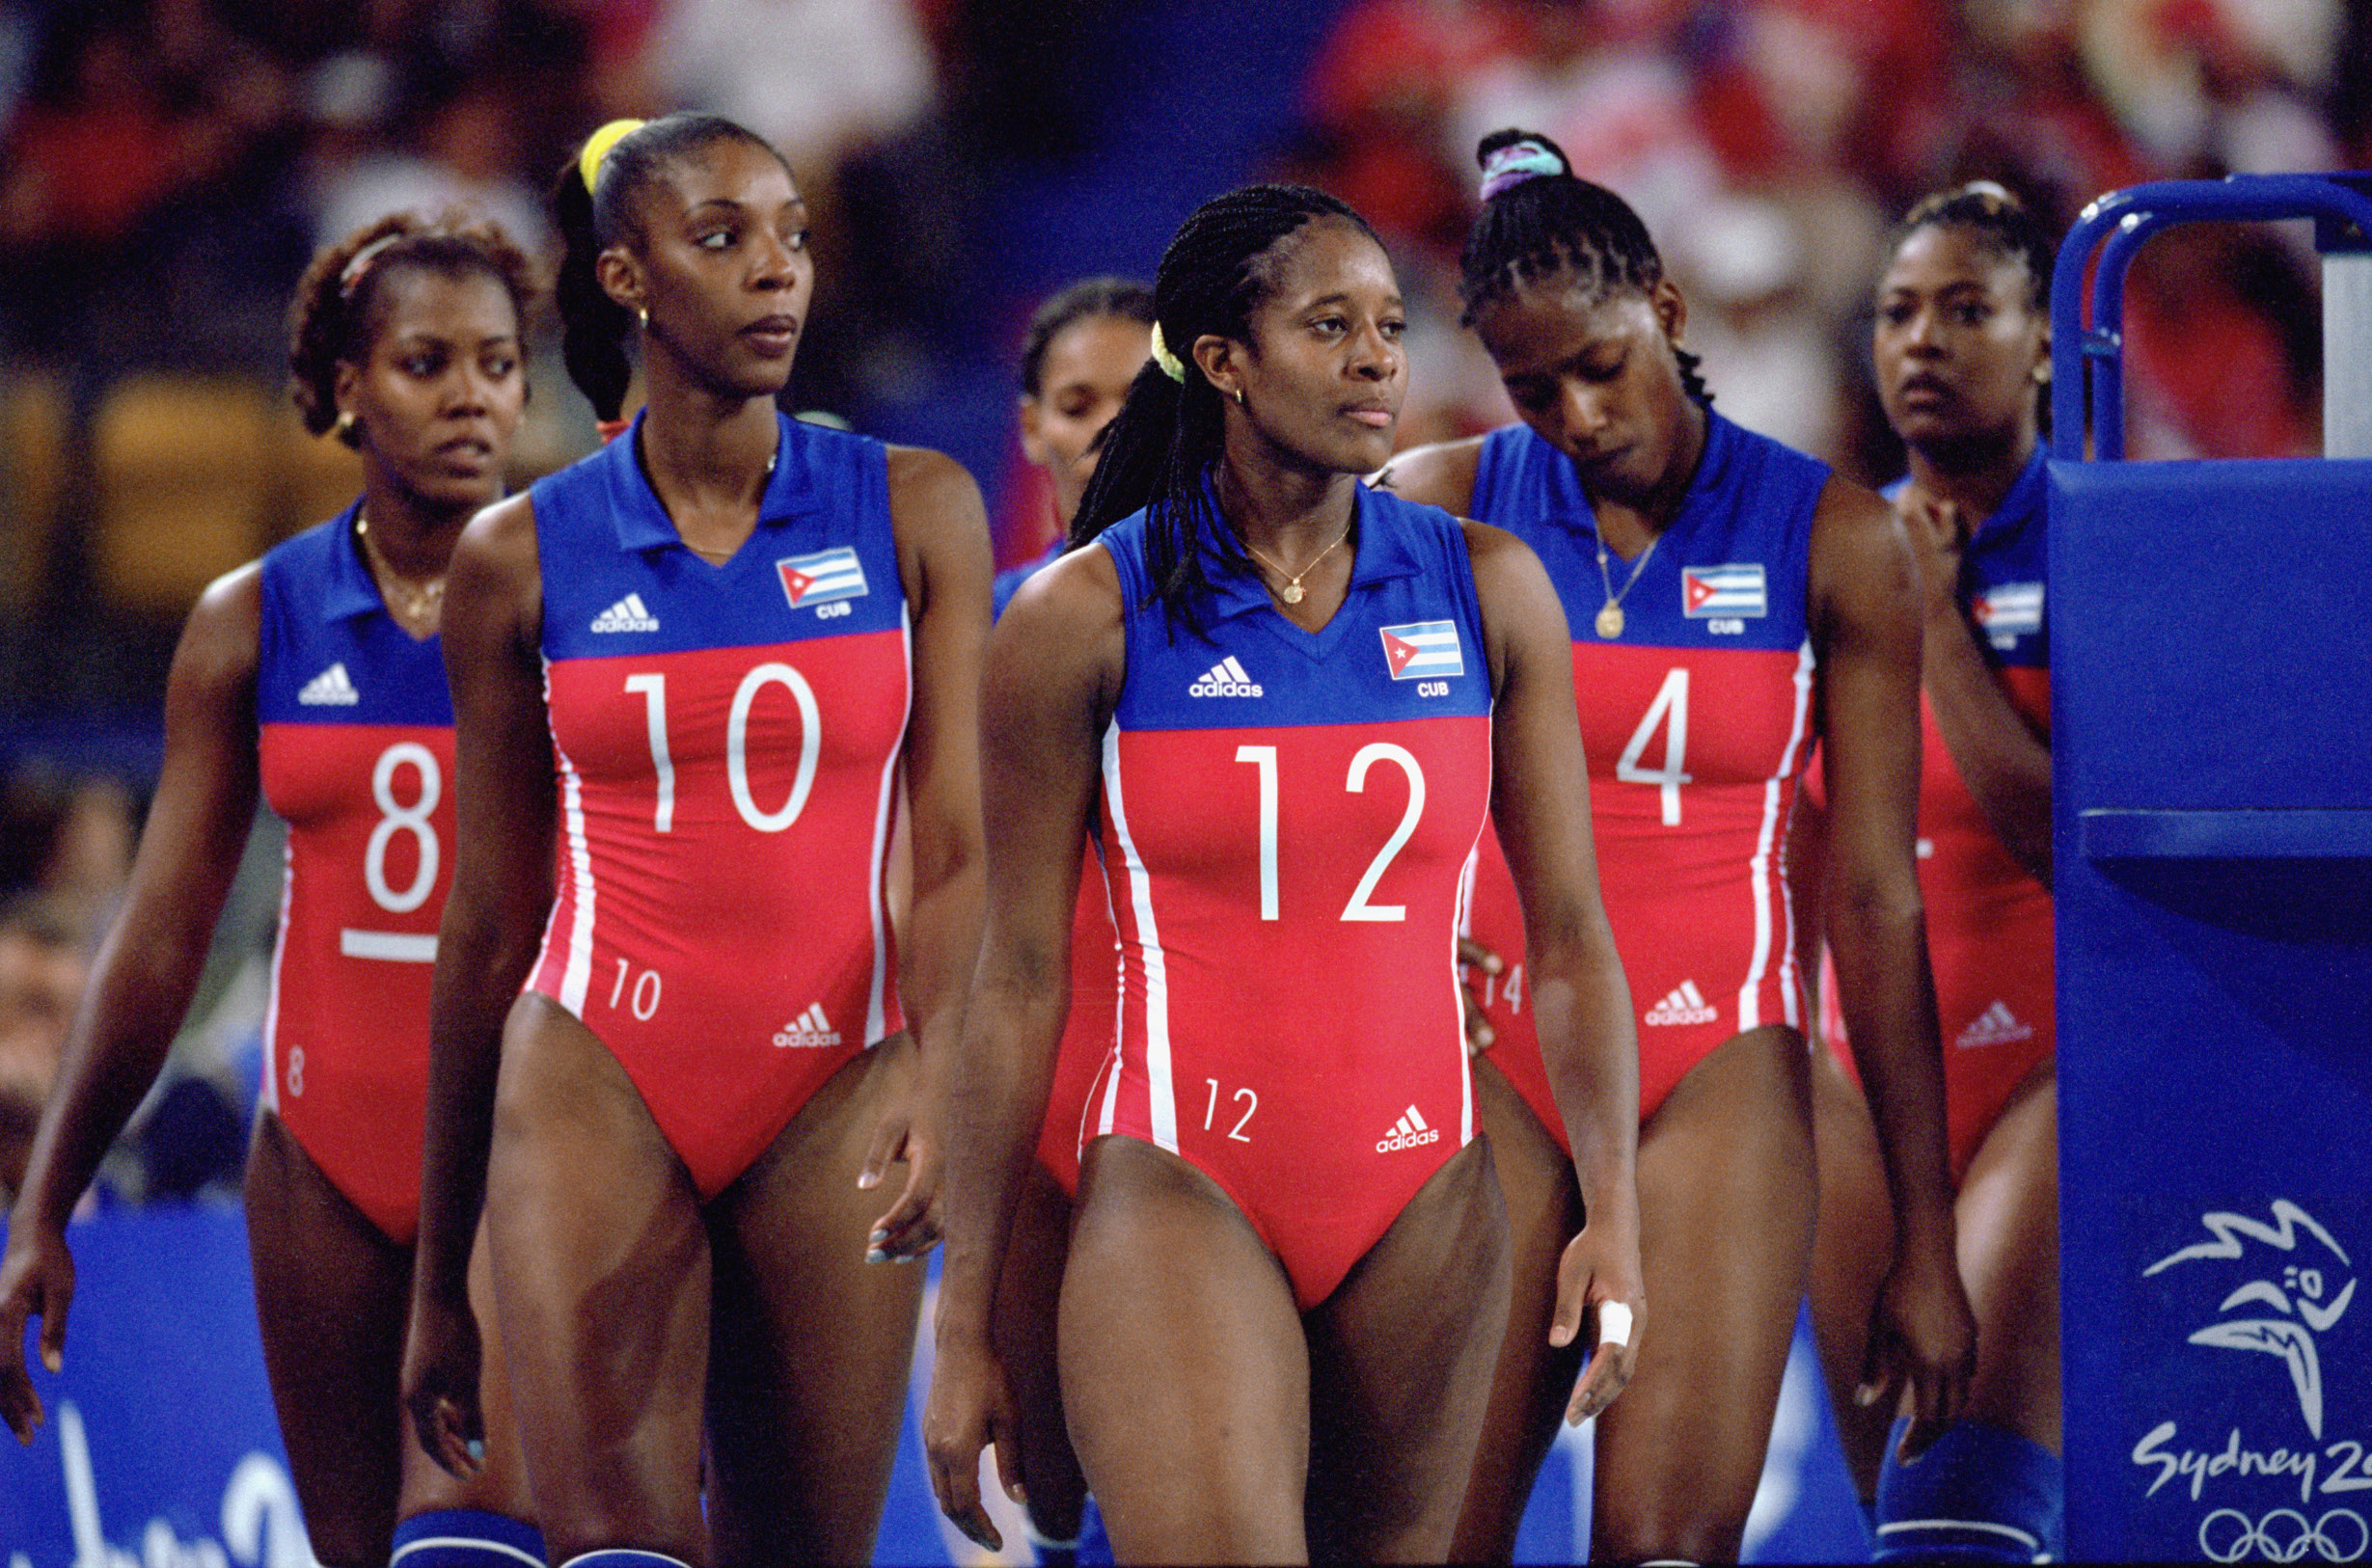 SYDNEY, AUSTRALIA - SEPTEMBER 16:  Taimarys Aguero #12 of Cuba leads her team onto the court during the Olympic Women's Indoor Volleyball competition at the Sydney Entertainment Centre in Sydney, Australia on September 16, 2000.  (Photo by Doug Pensinger/Getty Images)